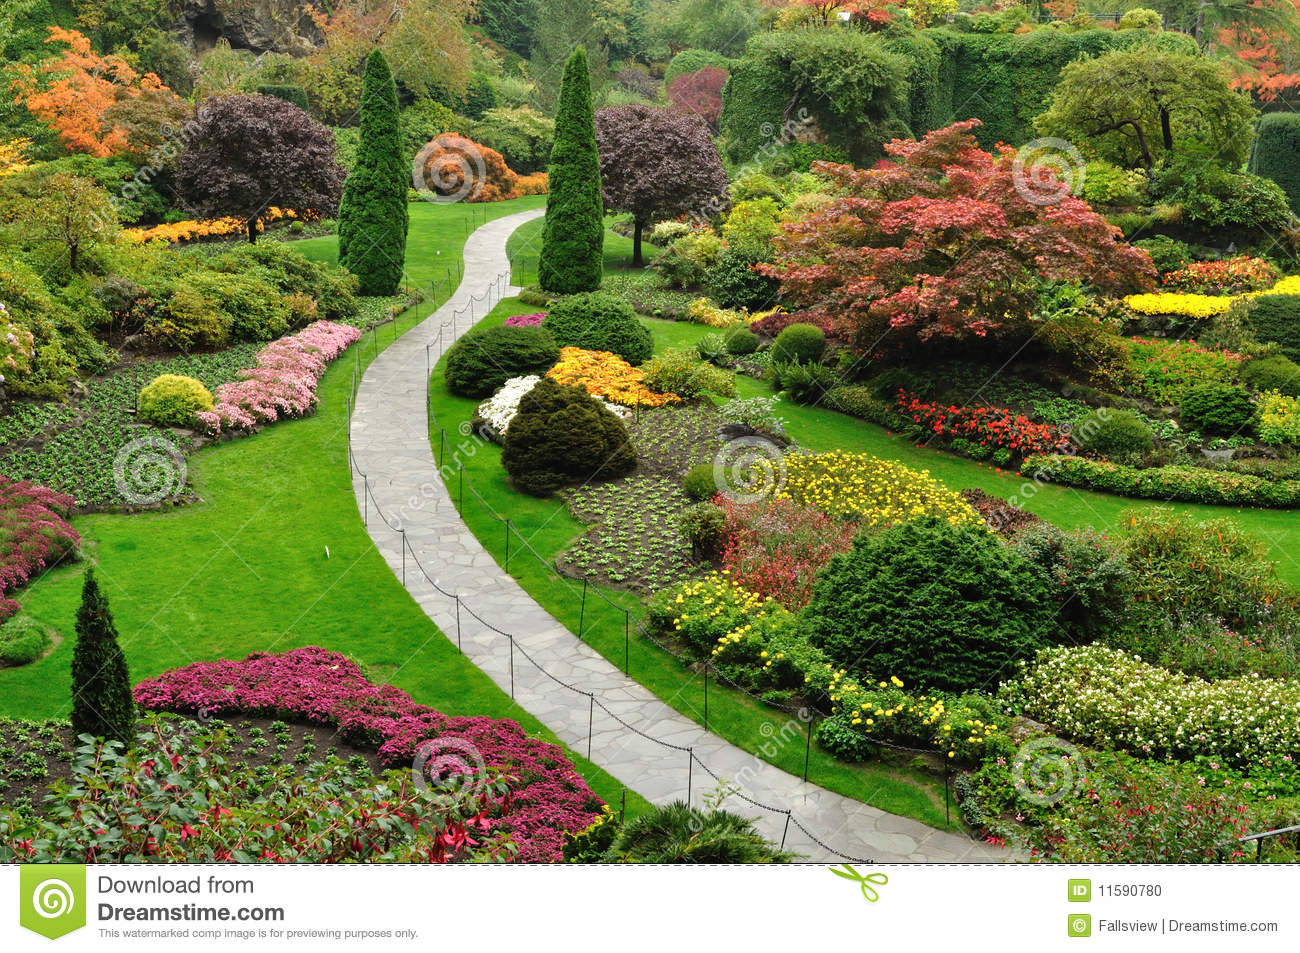 Am nagement de jardins photo stock image 11590780 for Amenagement jardin